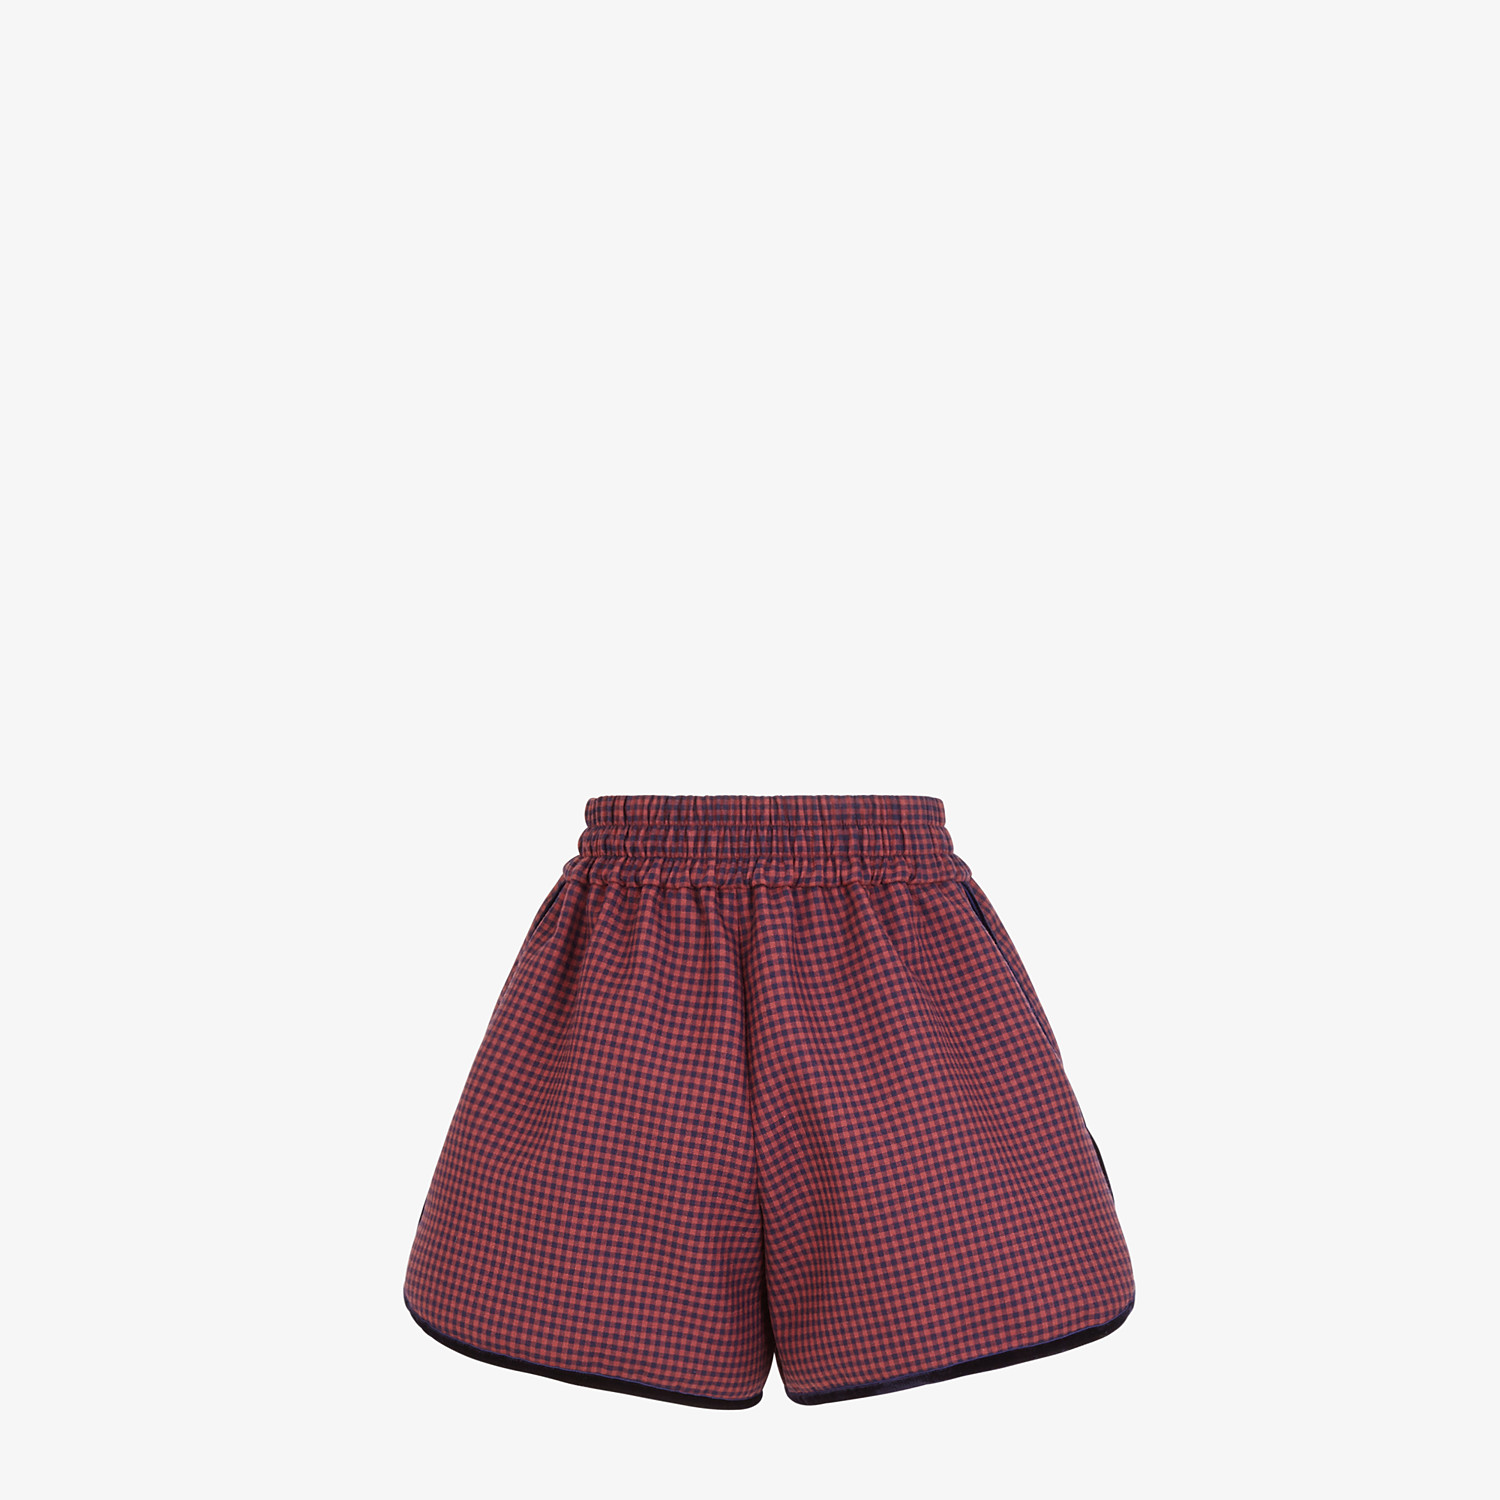 FENDI SHORTS - Check wool shorts - view 2 detail